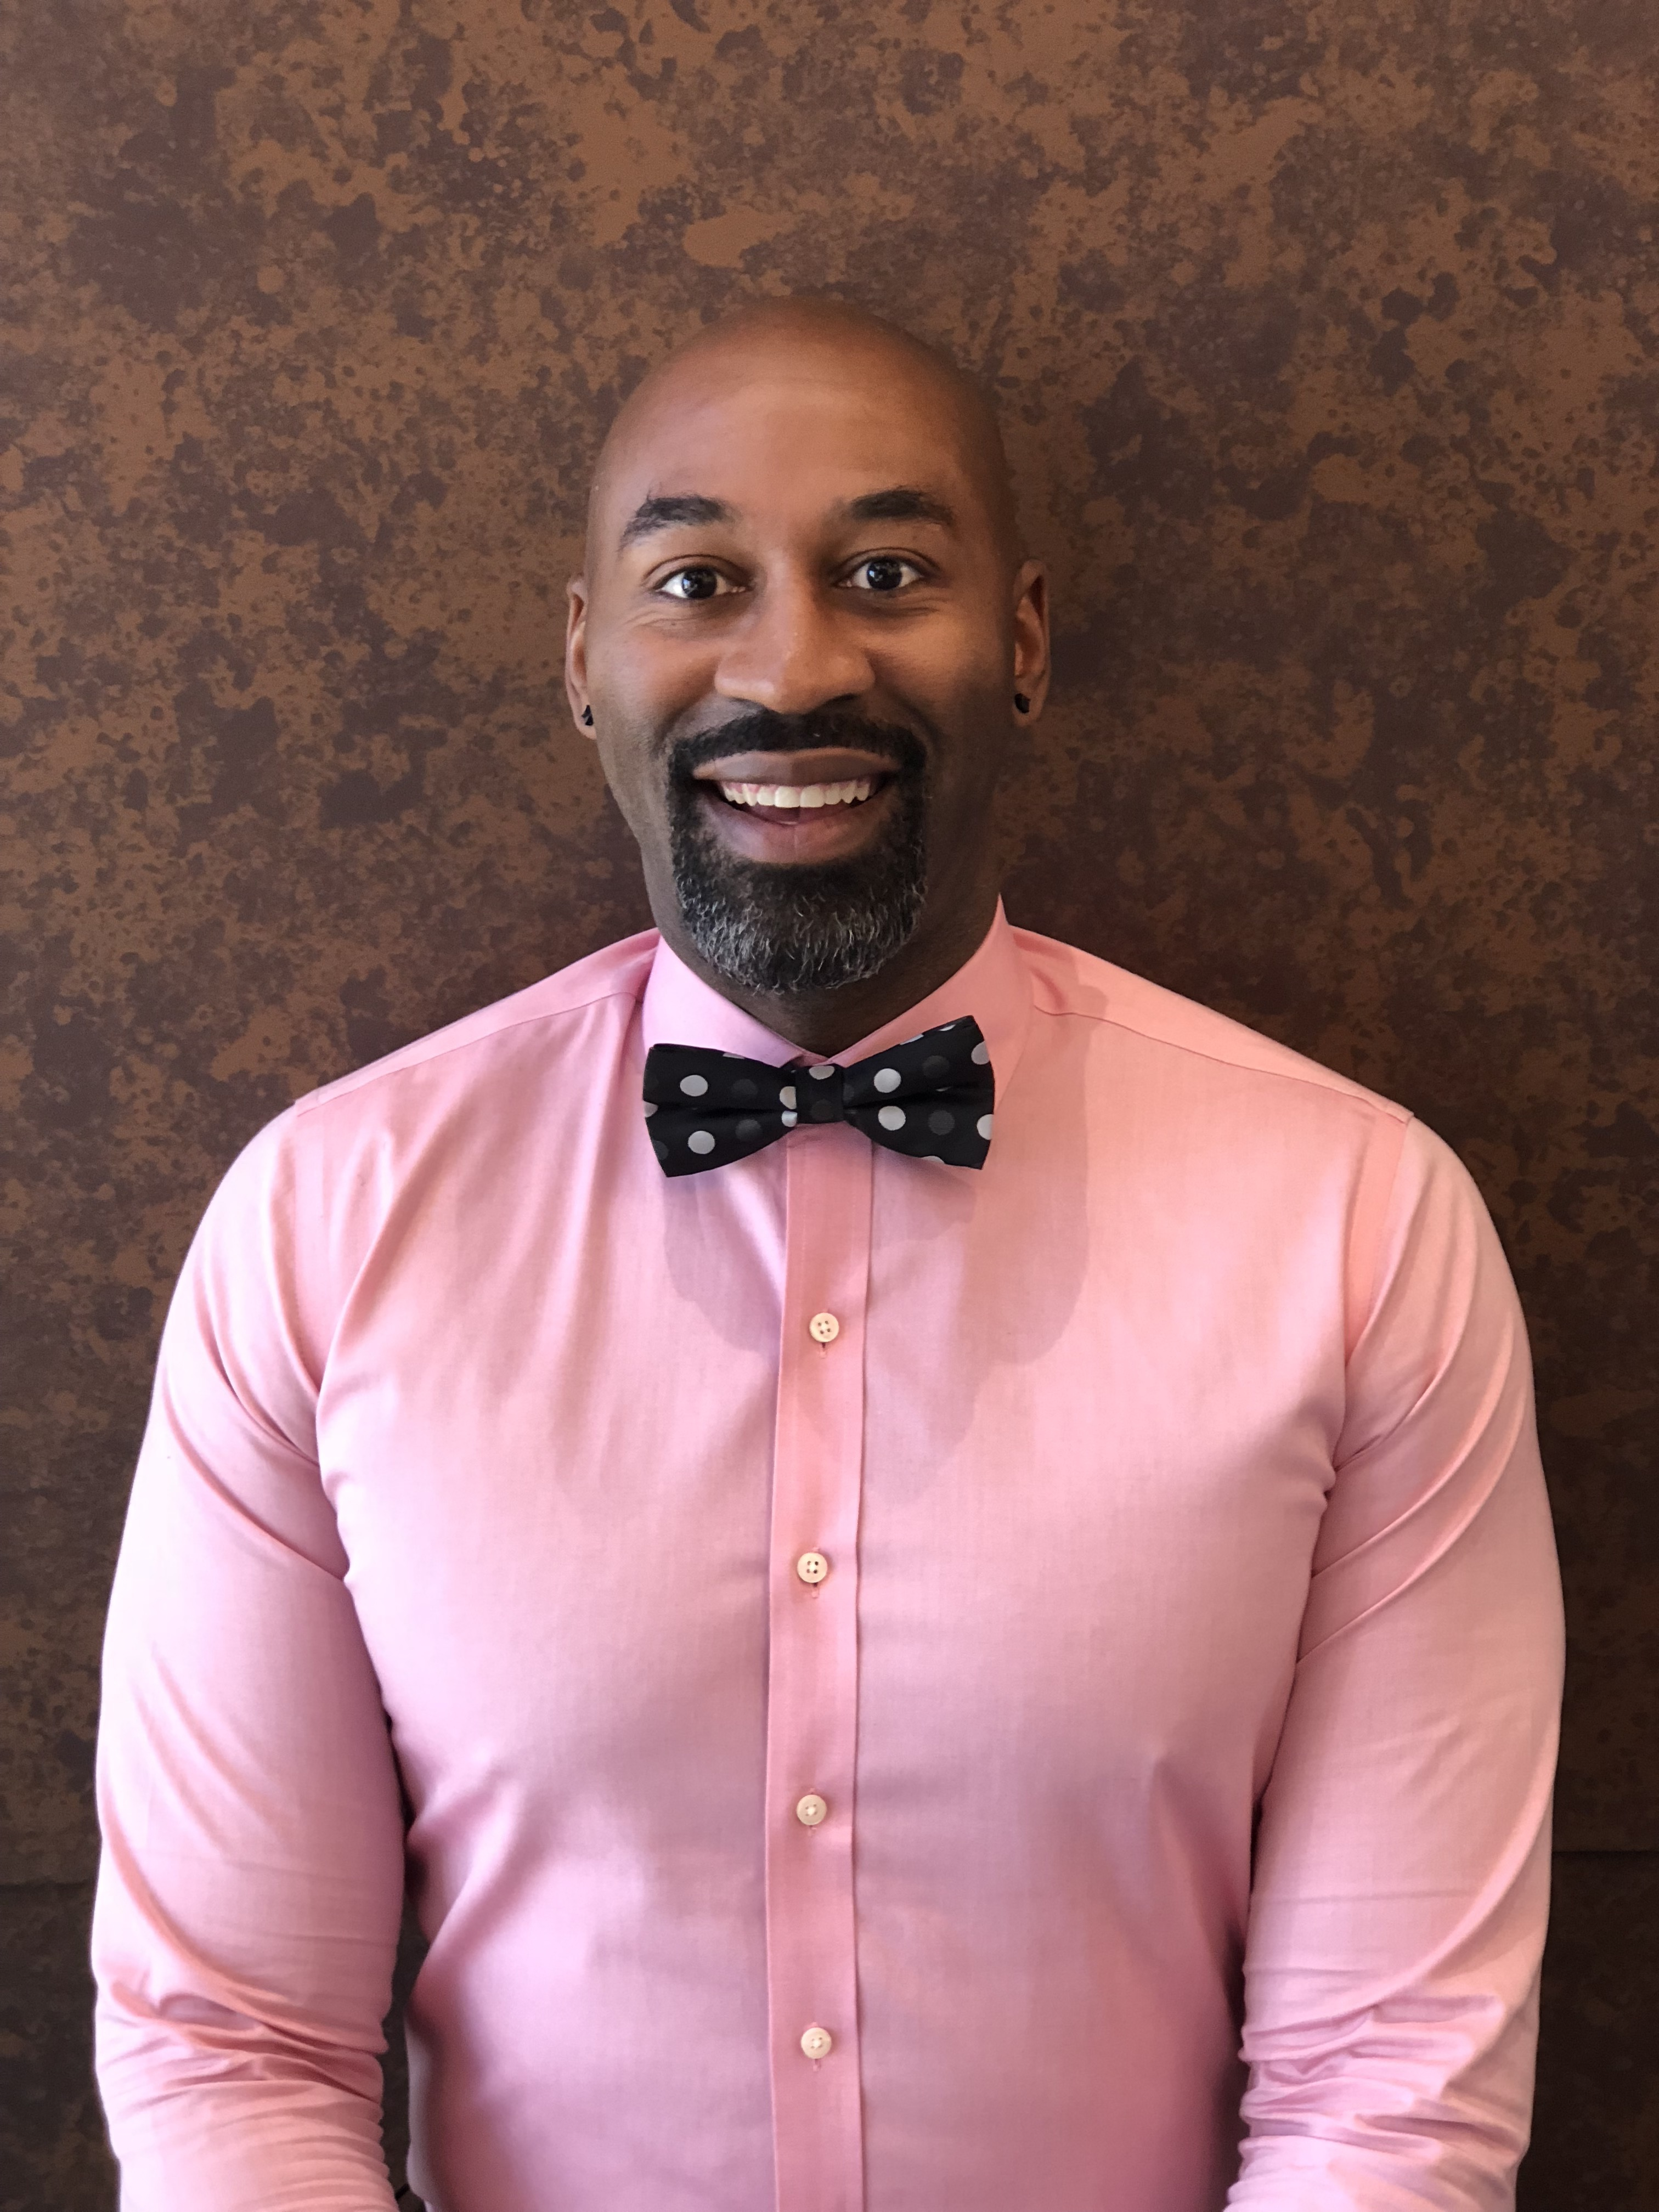 Teacher of the Year: Strong connections lead to success Kareem-Neal